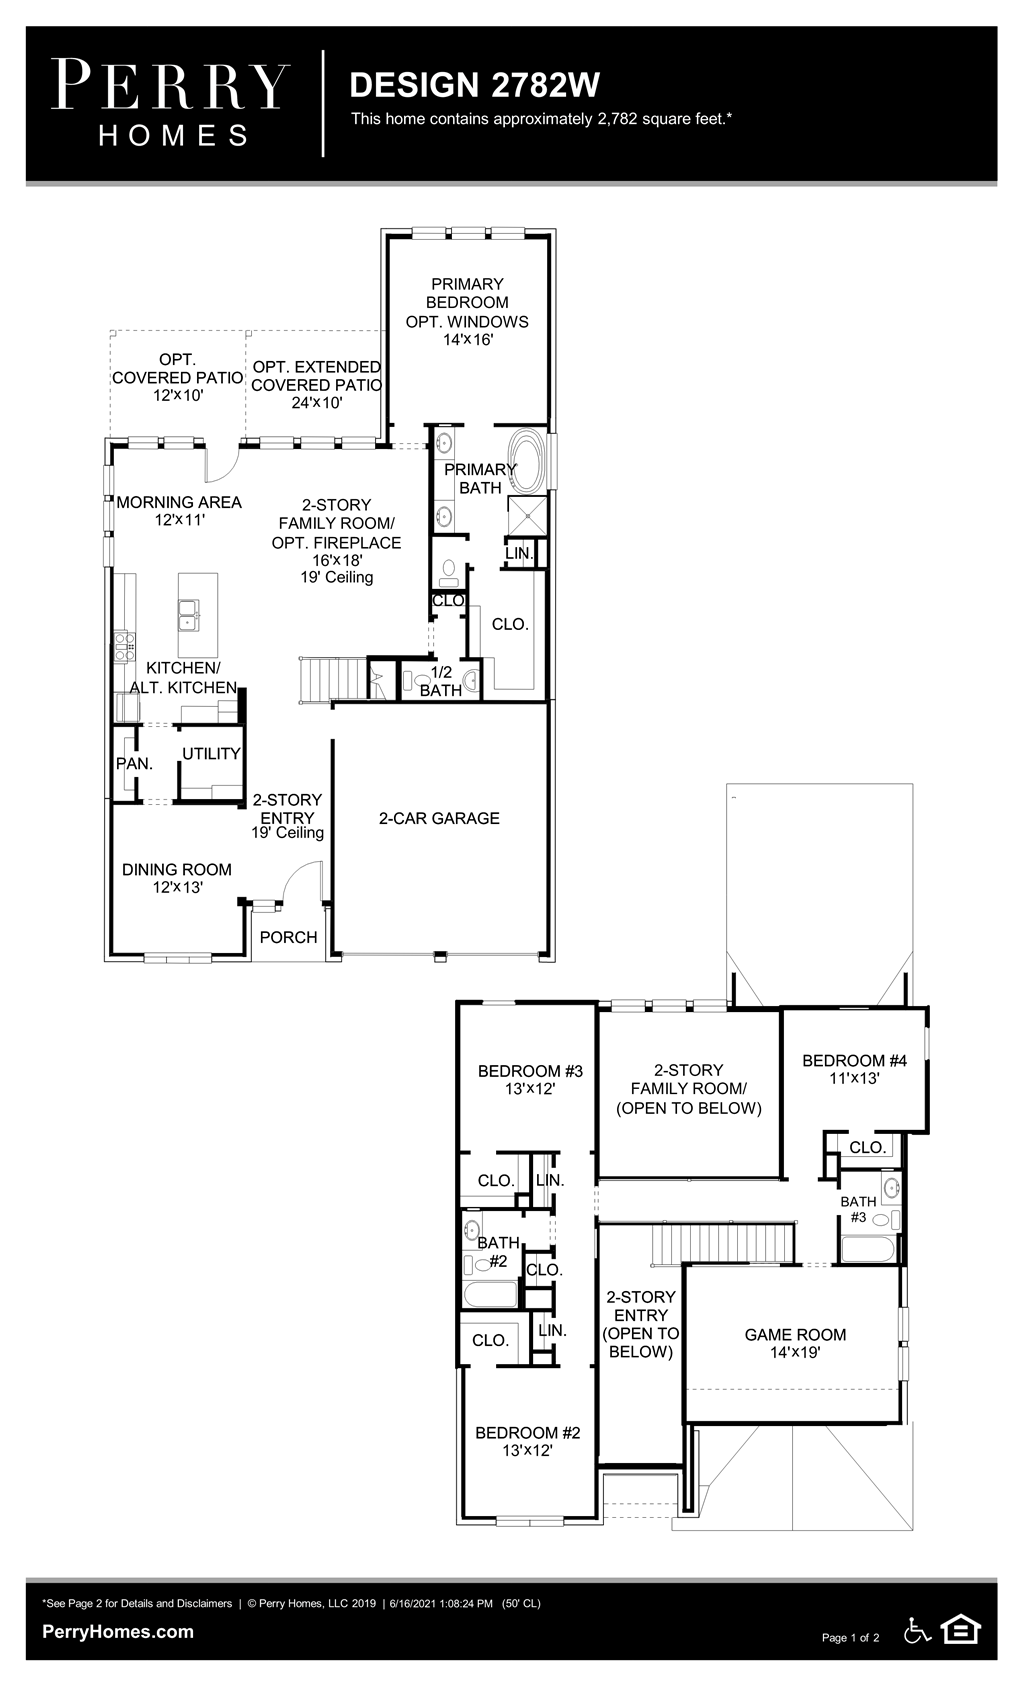 Floor Plan for 2782W